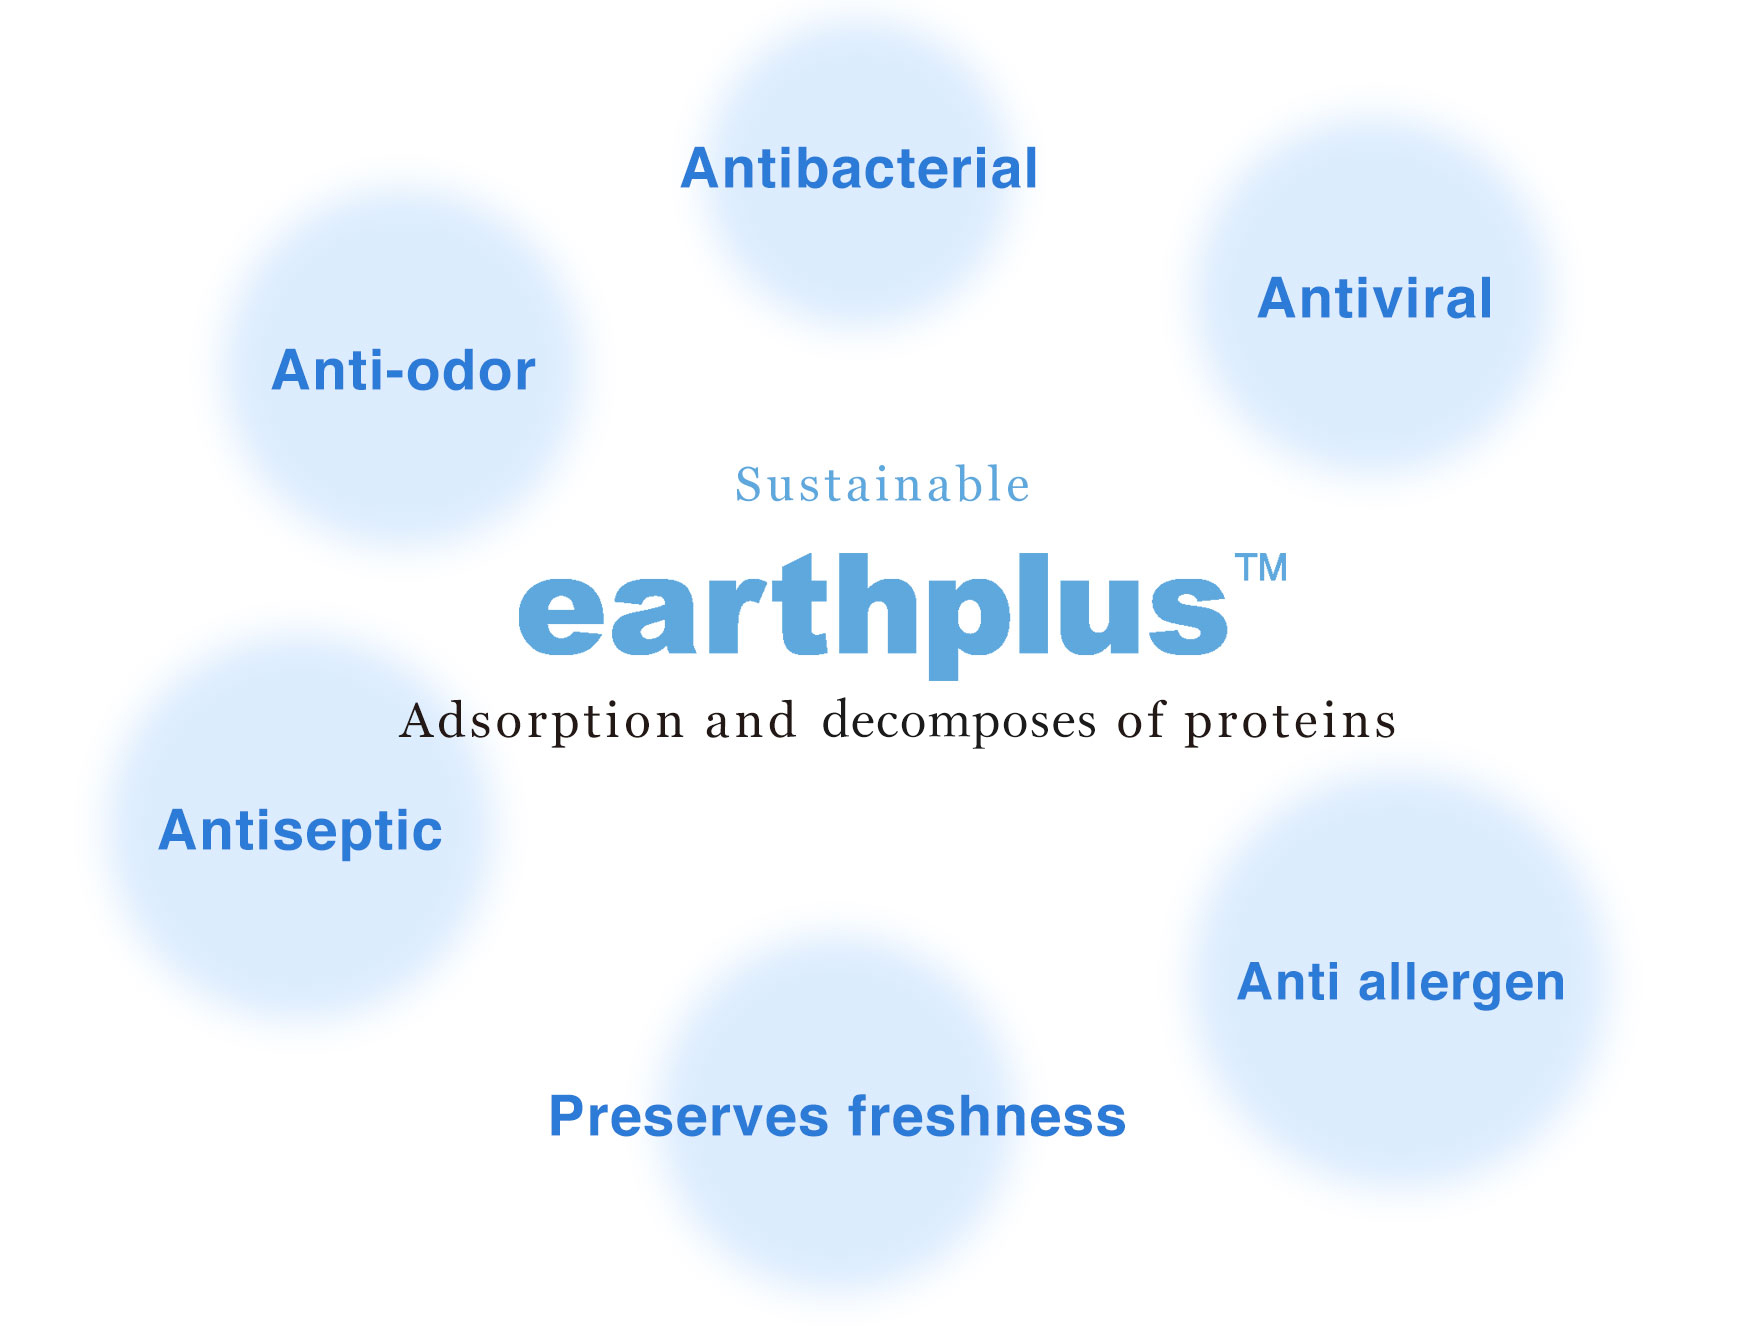 The possibilities offered by earthplus™